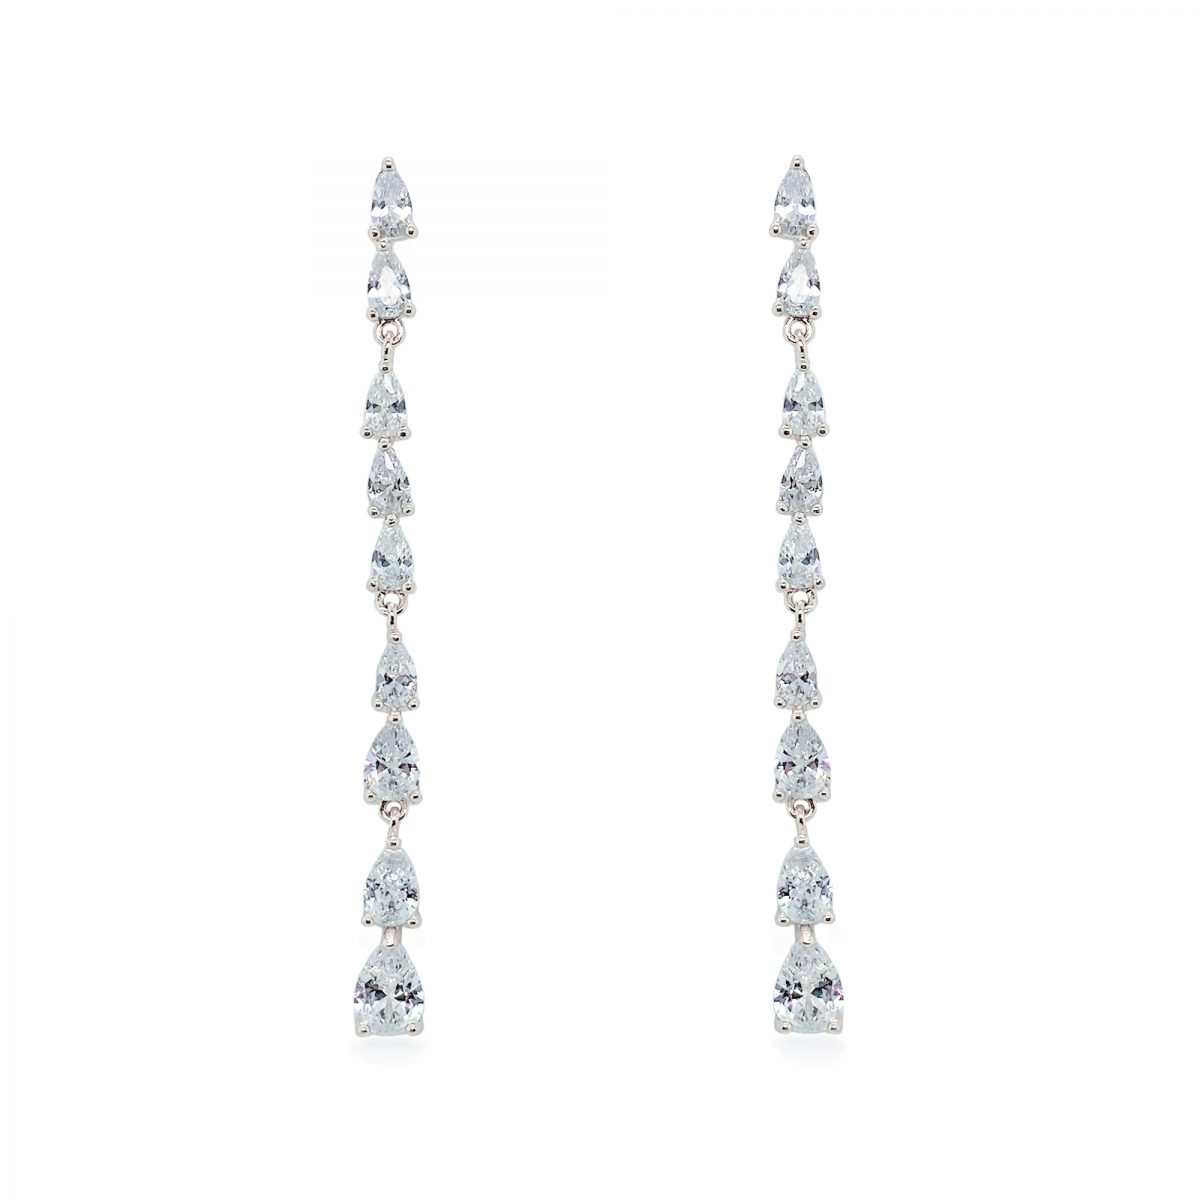 Ivory and Co Paris Silver Drop Earrings - Silver 1